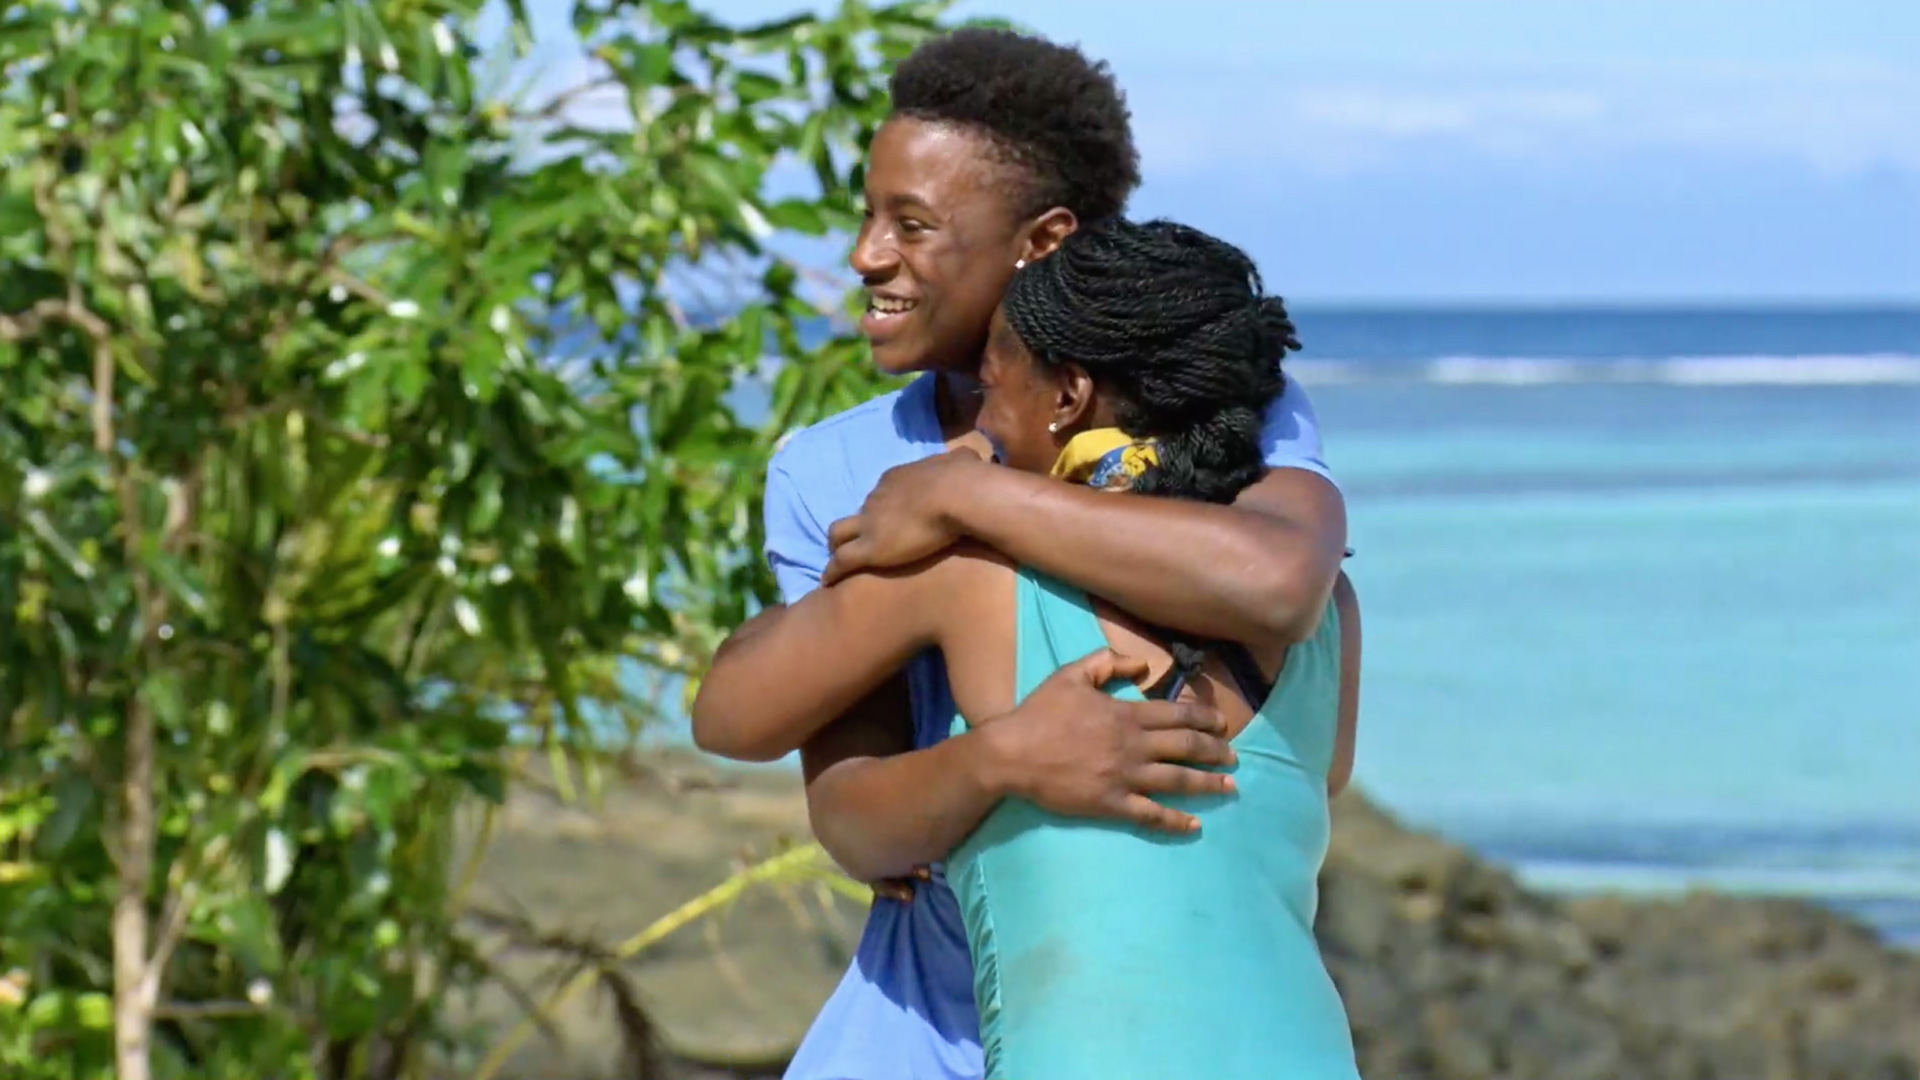 Season 34: Cirie Fields grabs a hold of her son.